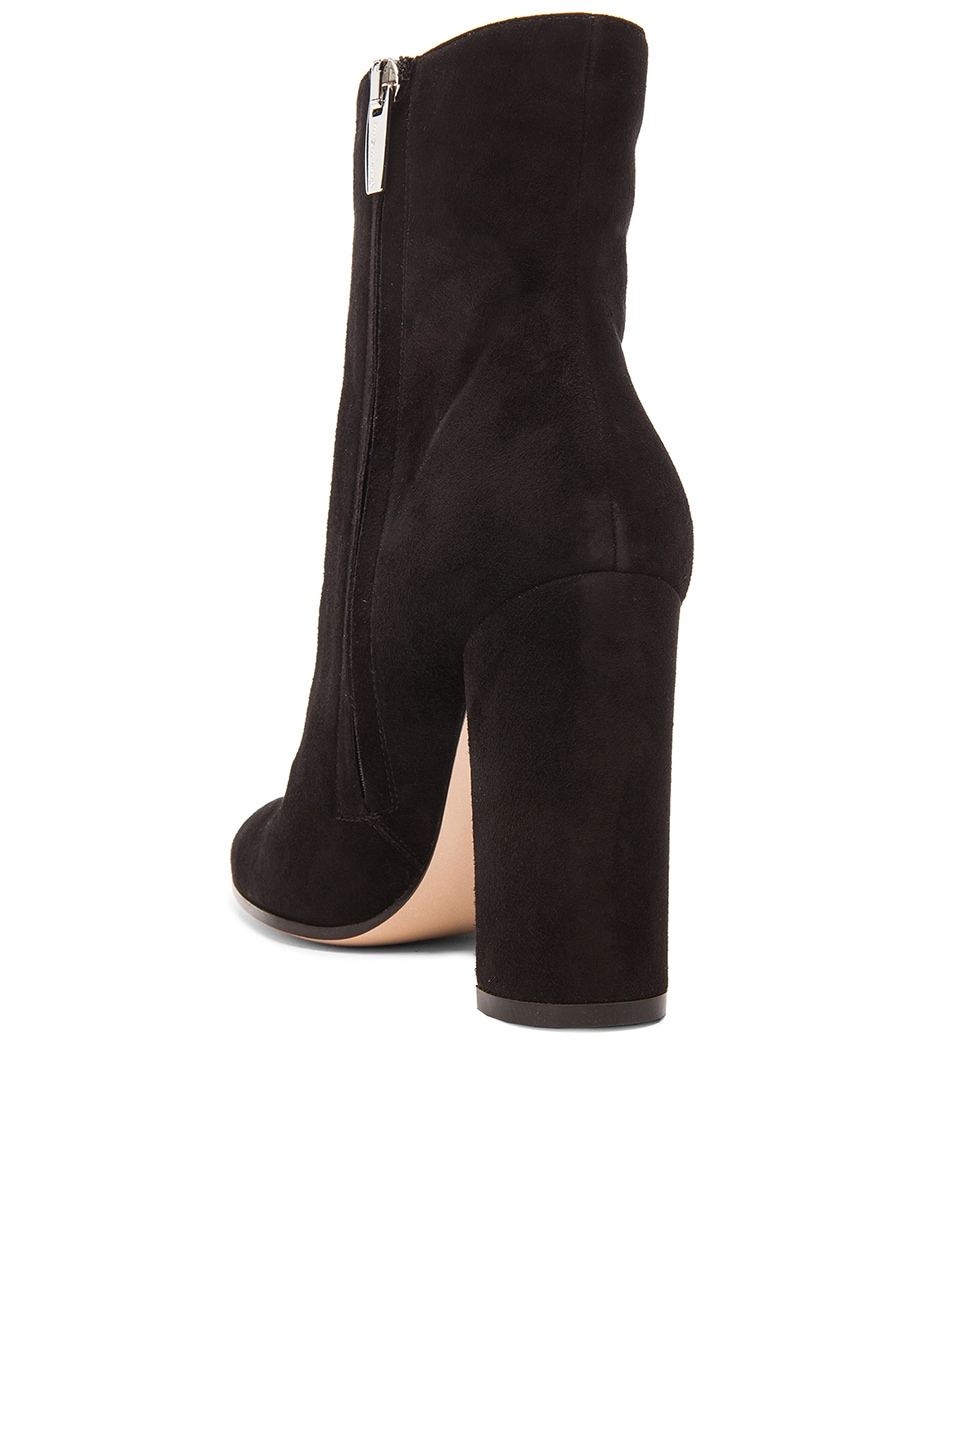 Image 3 of Gianvito Rossi Suede Booties in Black